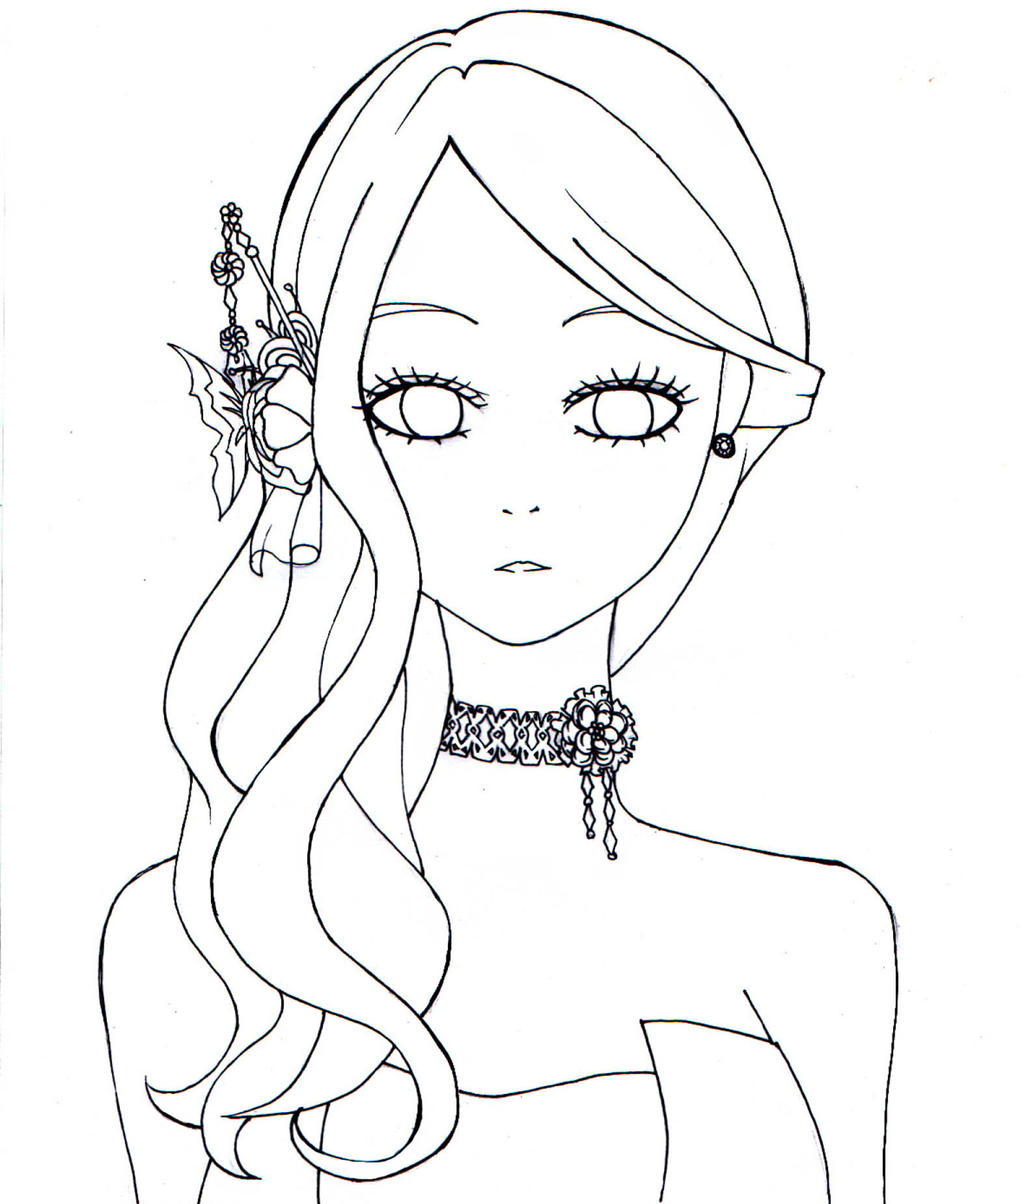 Line Art On Photo : My fair lady adeiona free line art by chubbycheeksmylove